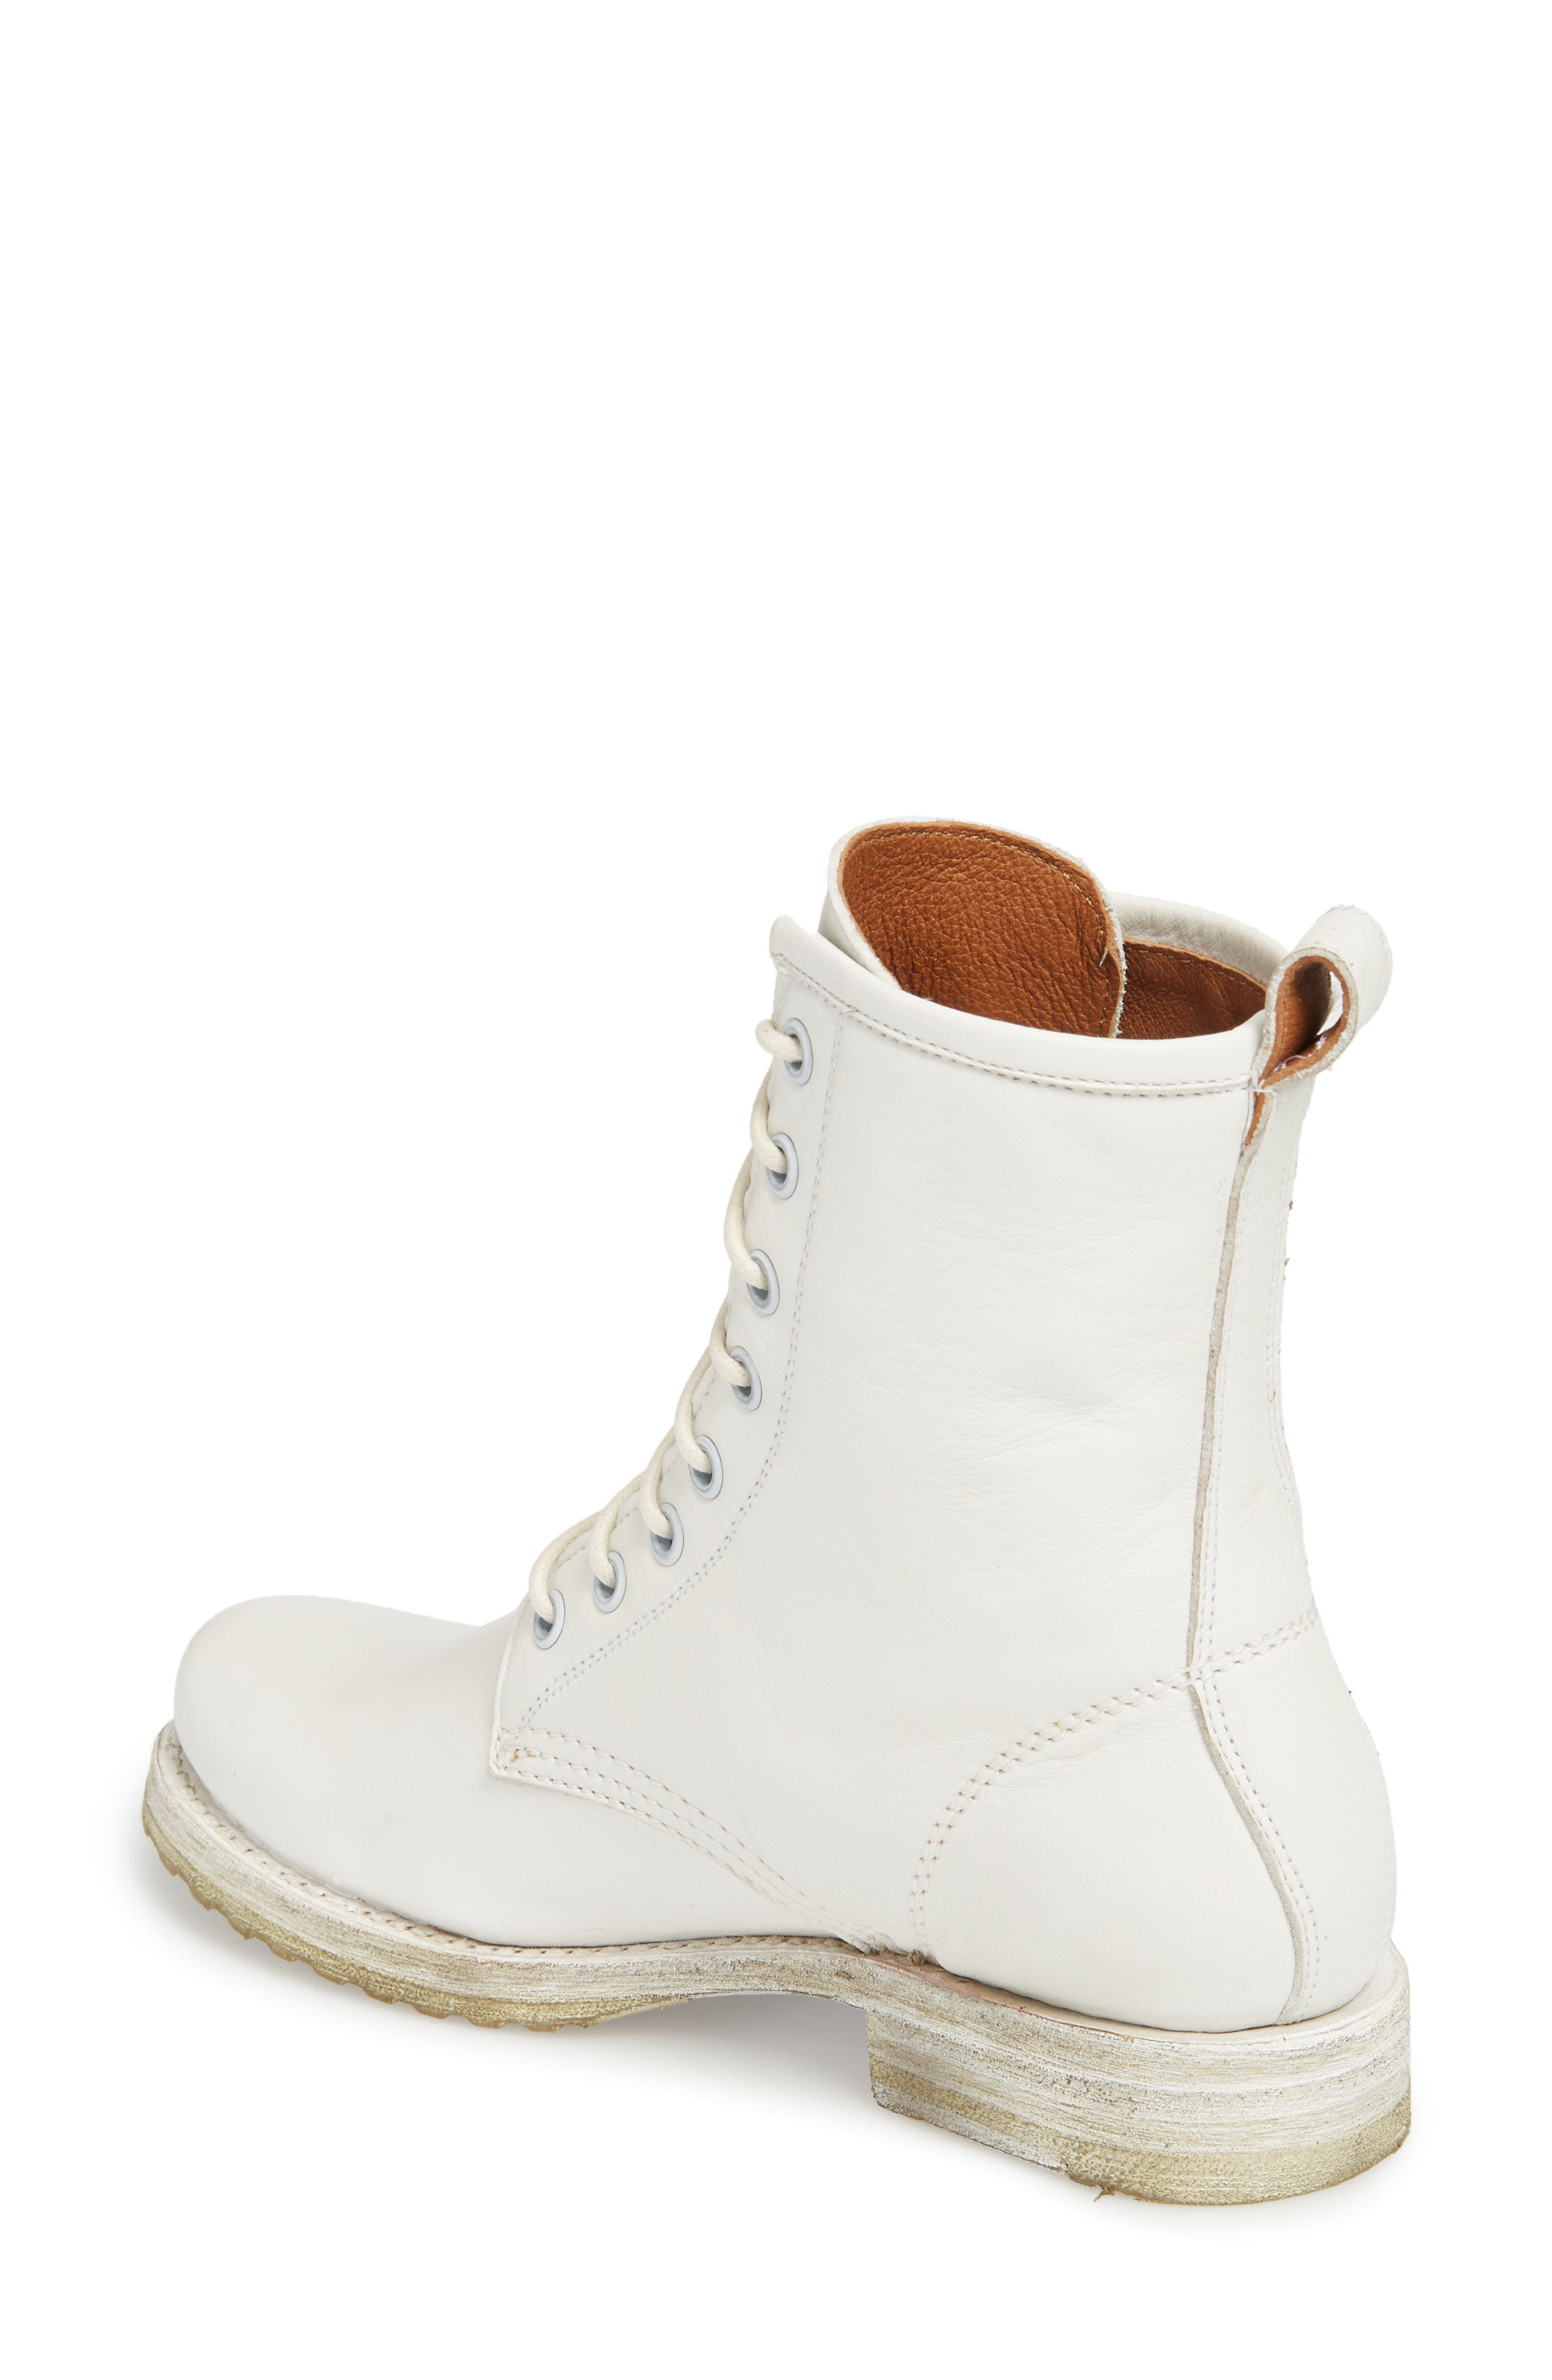 FRYE, Veronica Combat Boot, Alternate thumbnail 2, color, WHITE LEATHER